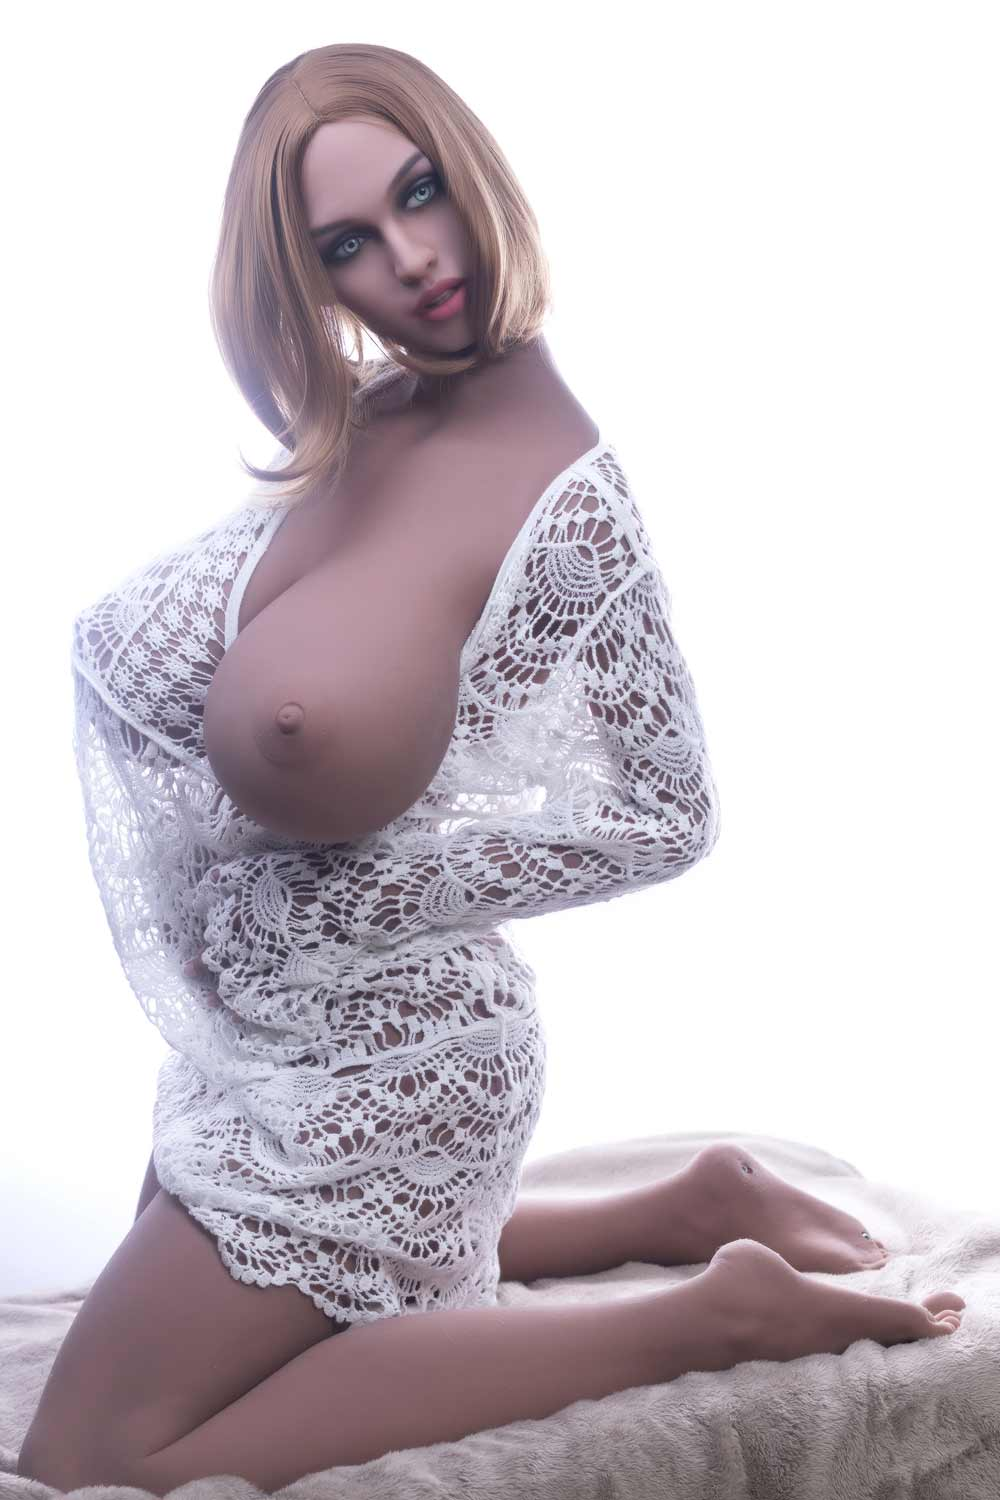 Big breasted sex doll with breasts protruding from clothes